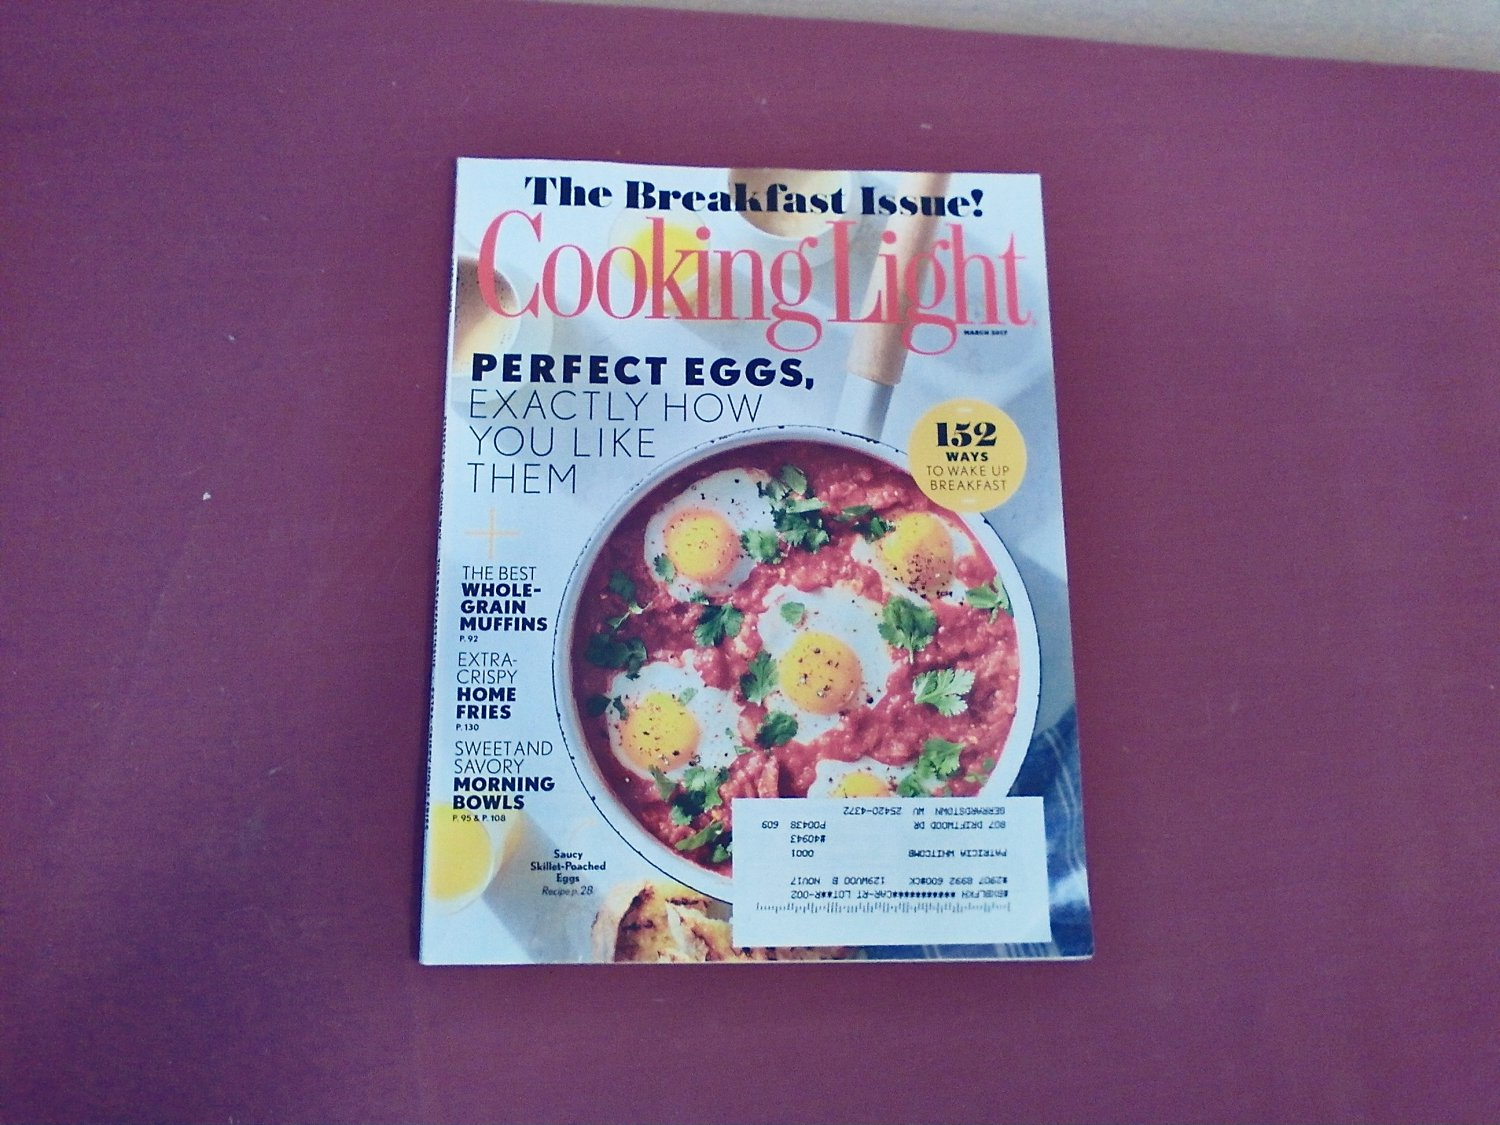 Cooking Light March 2017 Vol. 31 No. 2 - The Breakfast Issue Perfect Eggs (G1)